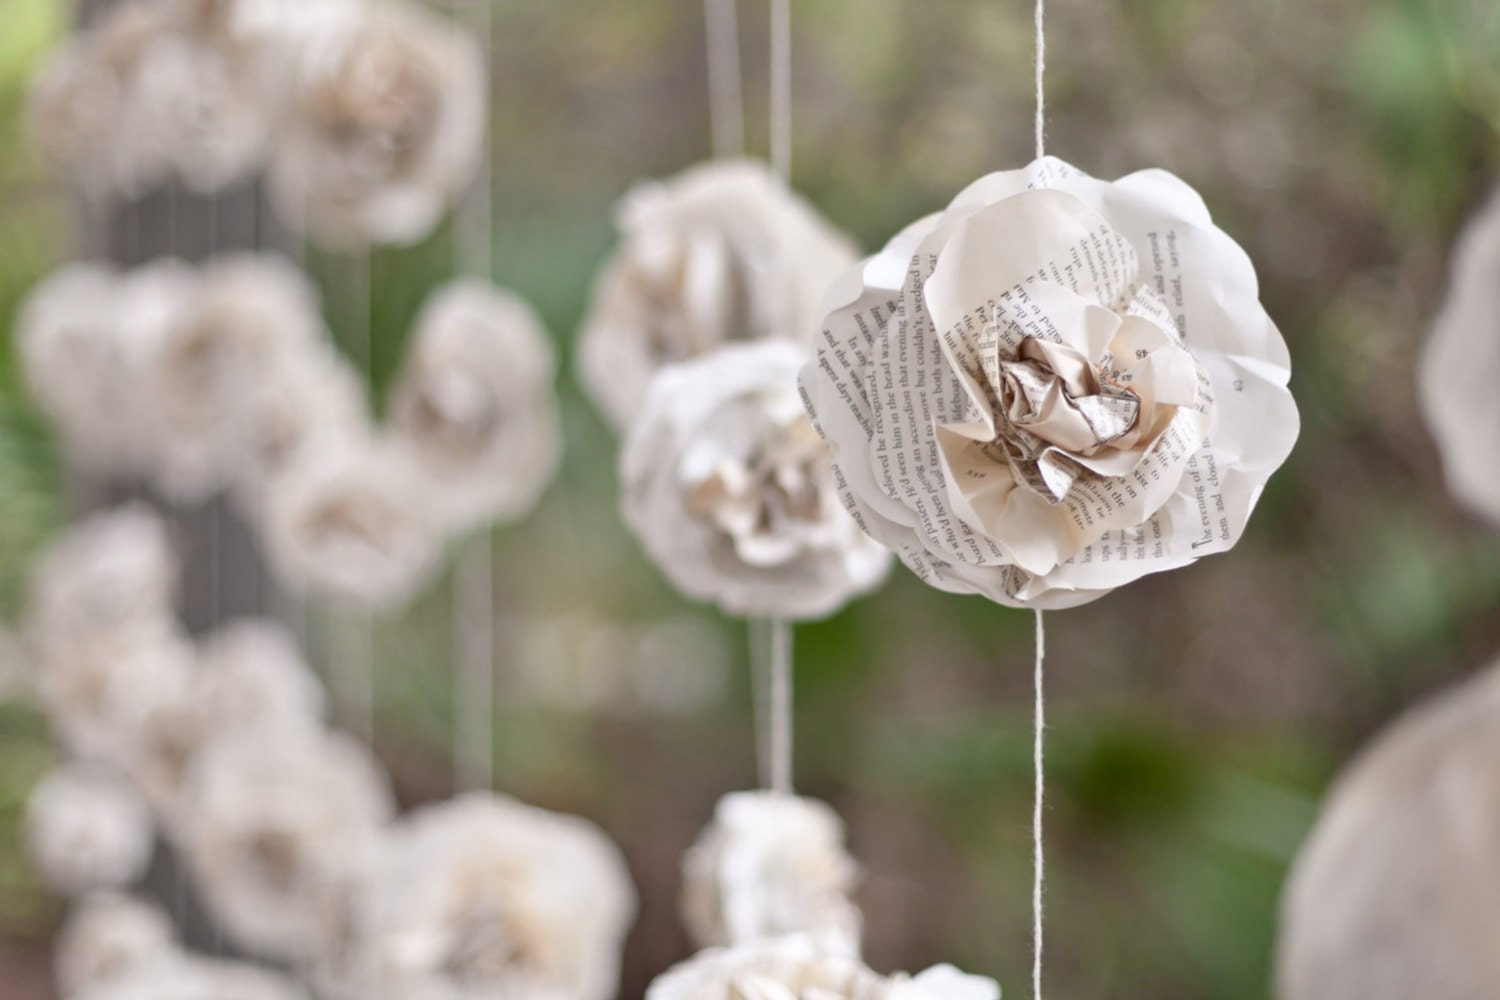 One wedding garland 10 ft long paper flower roses beautiful zoom dhlflorist Image collections